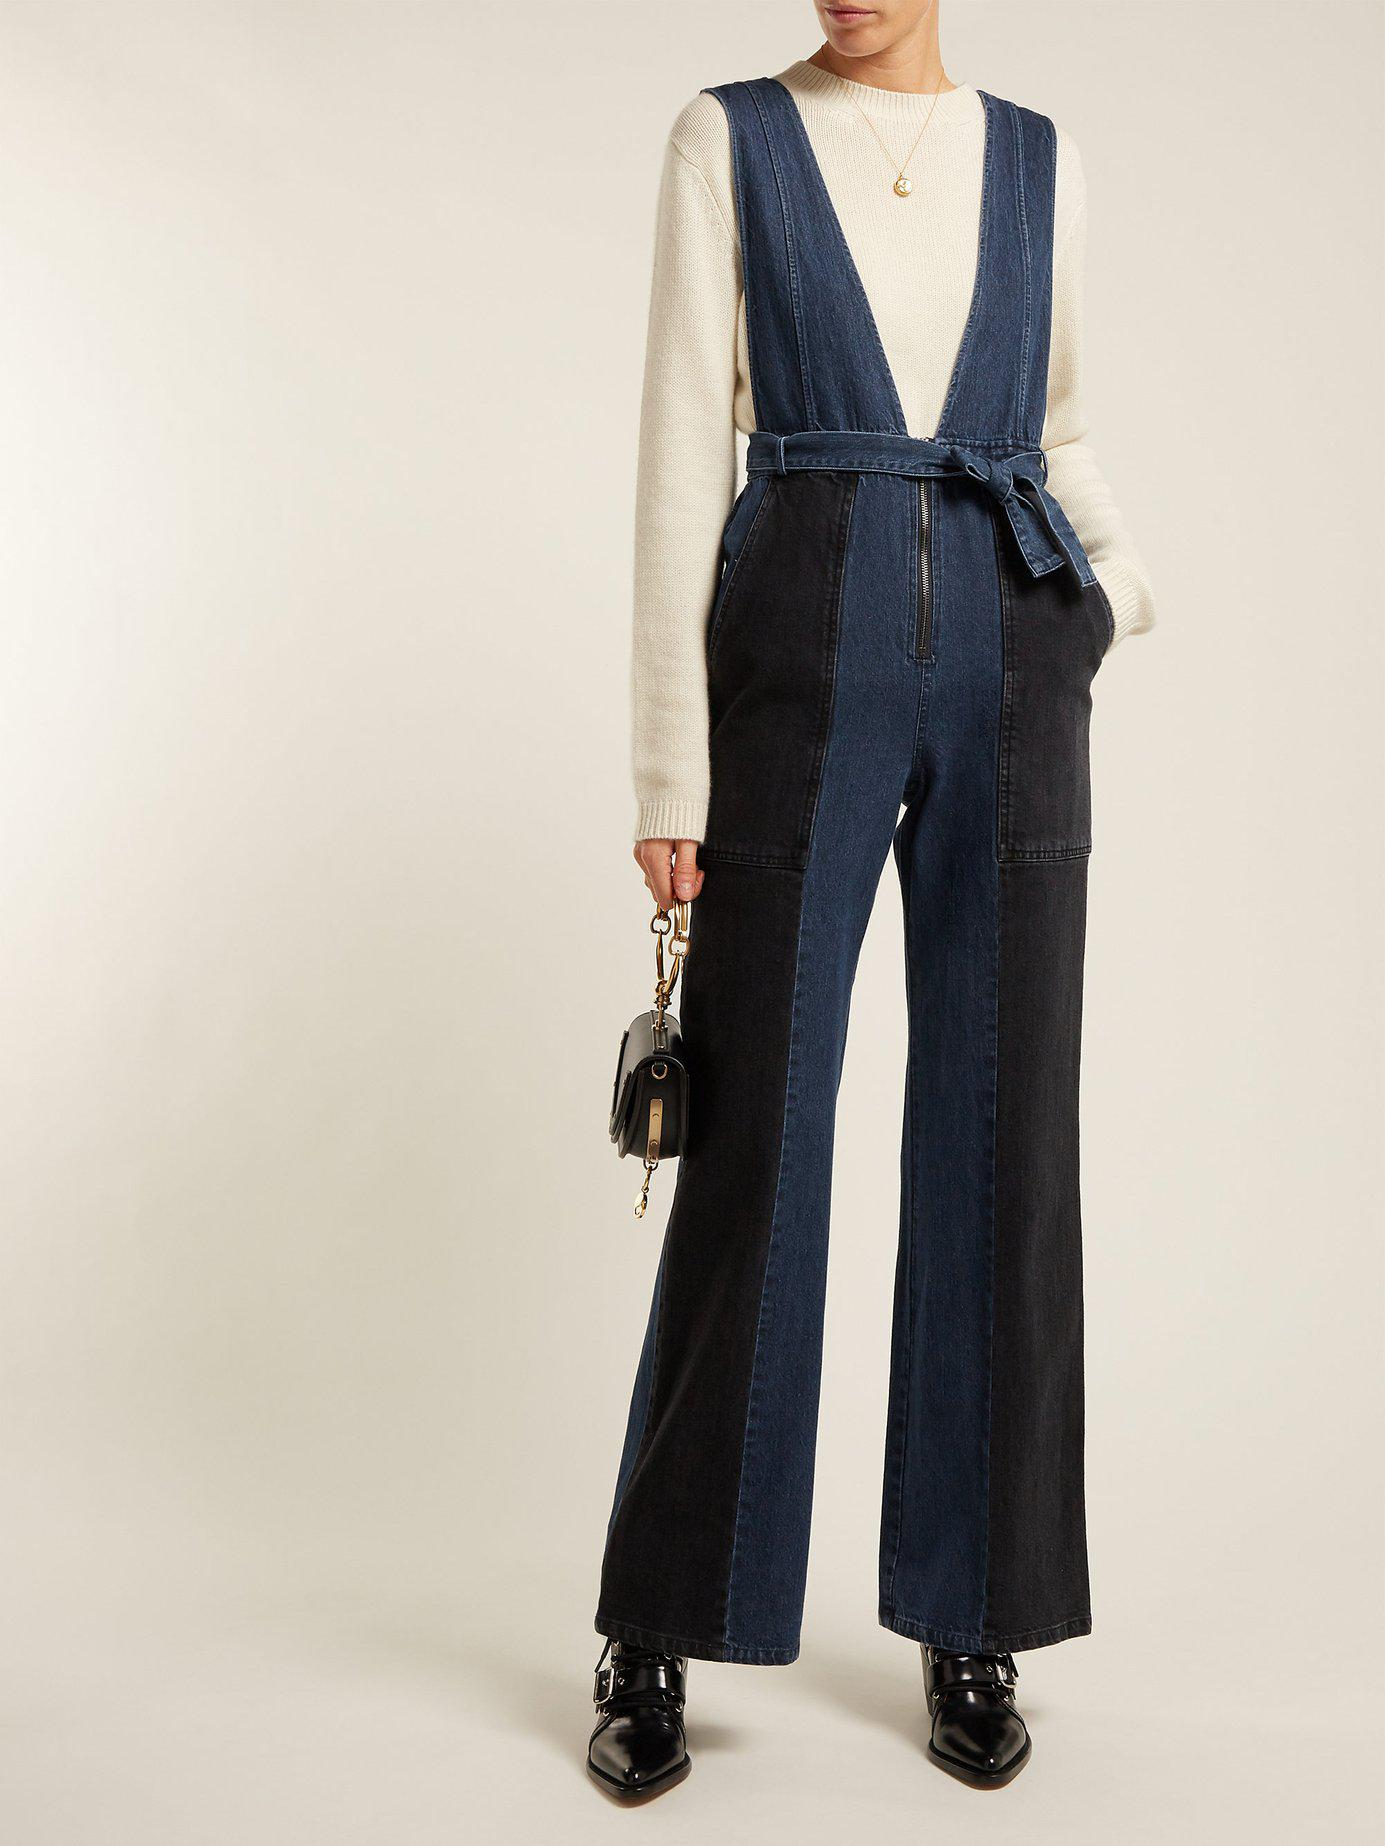 a44463a8d2a8 Lyst - Sea Paneled Denim Jumpsuit in Blue - Save 60%